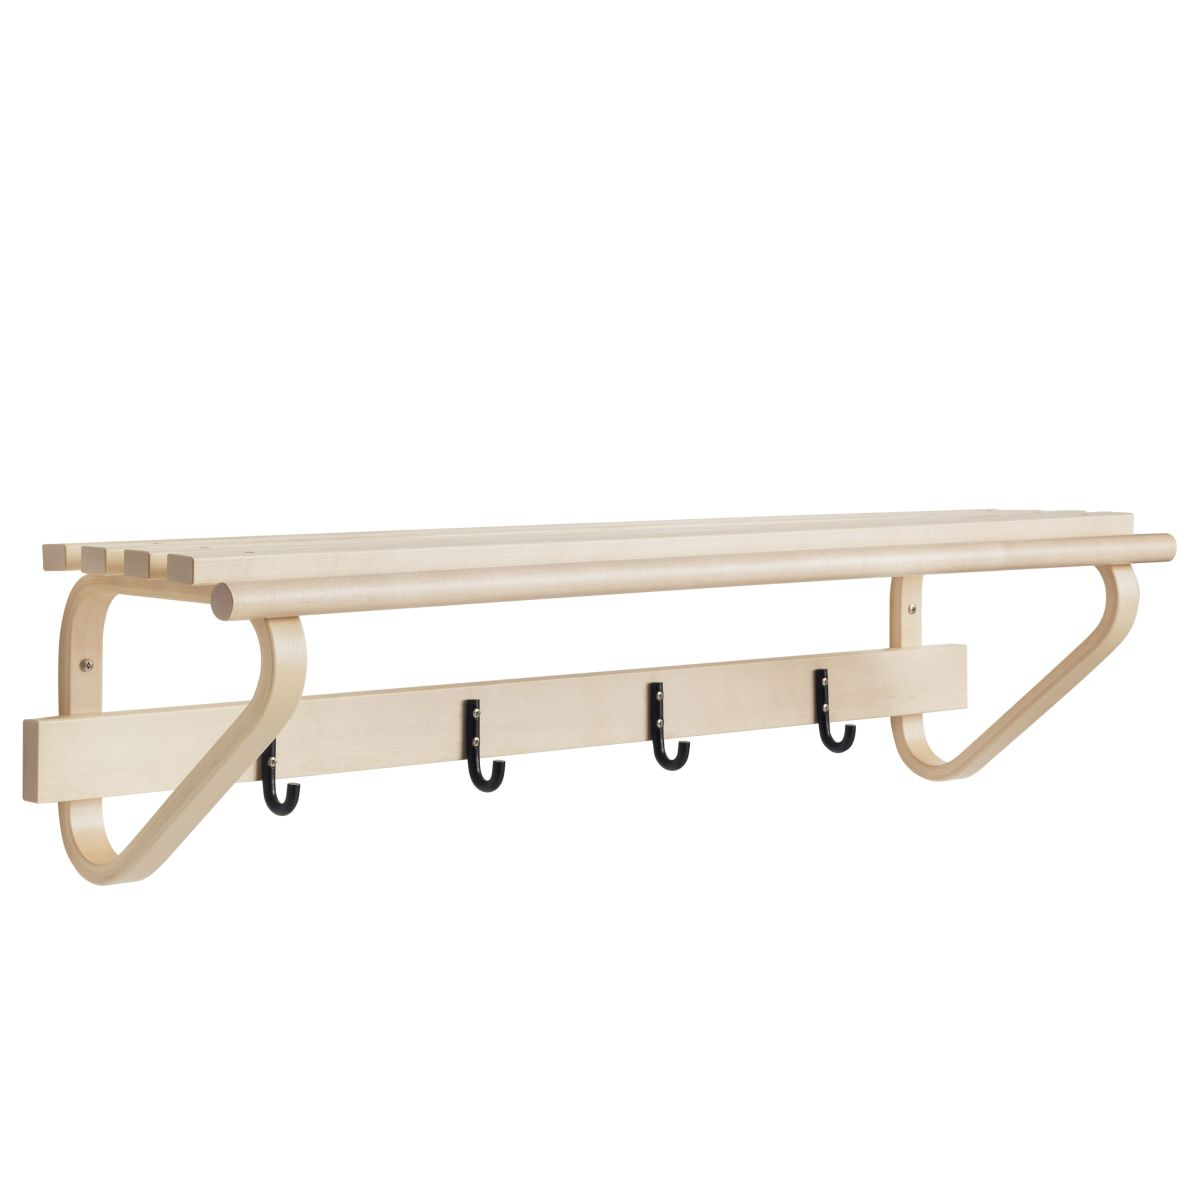 Coat Rack 109C cut out_WEB